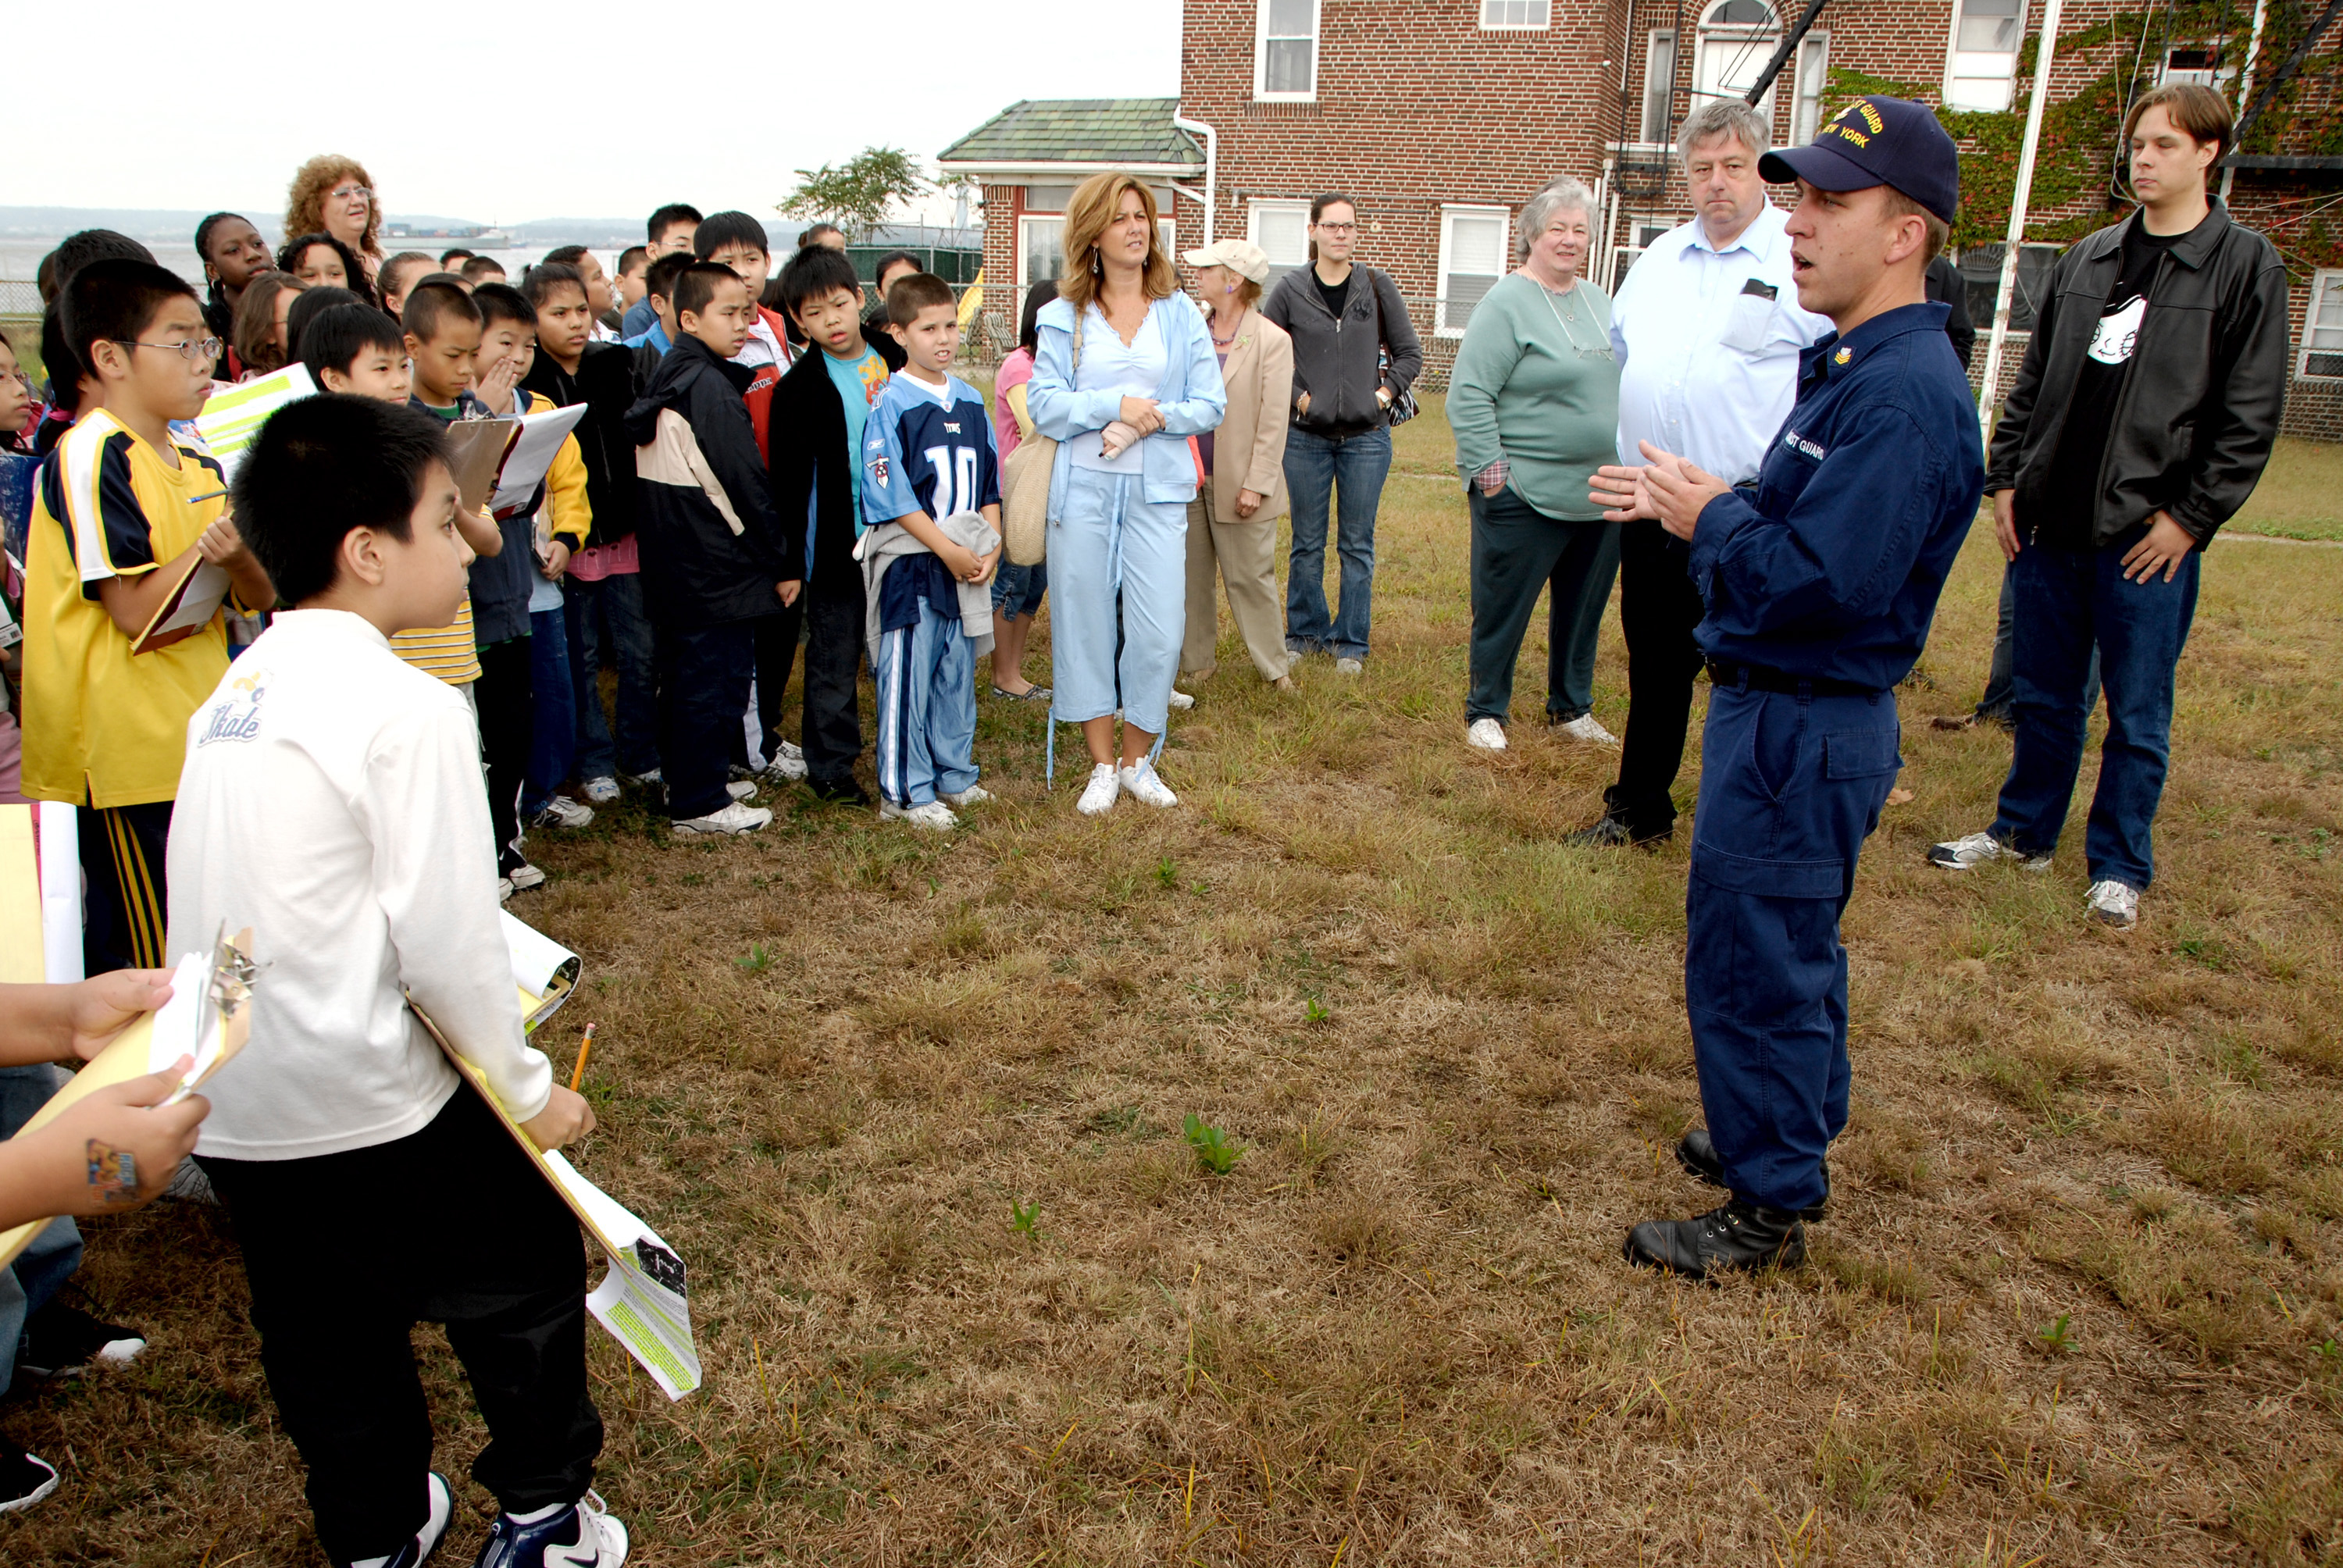 Coast Guard member speaking to public